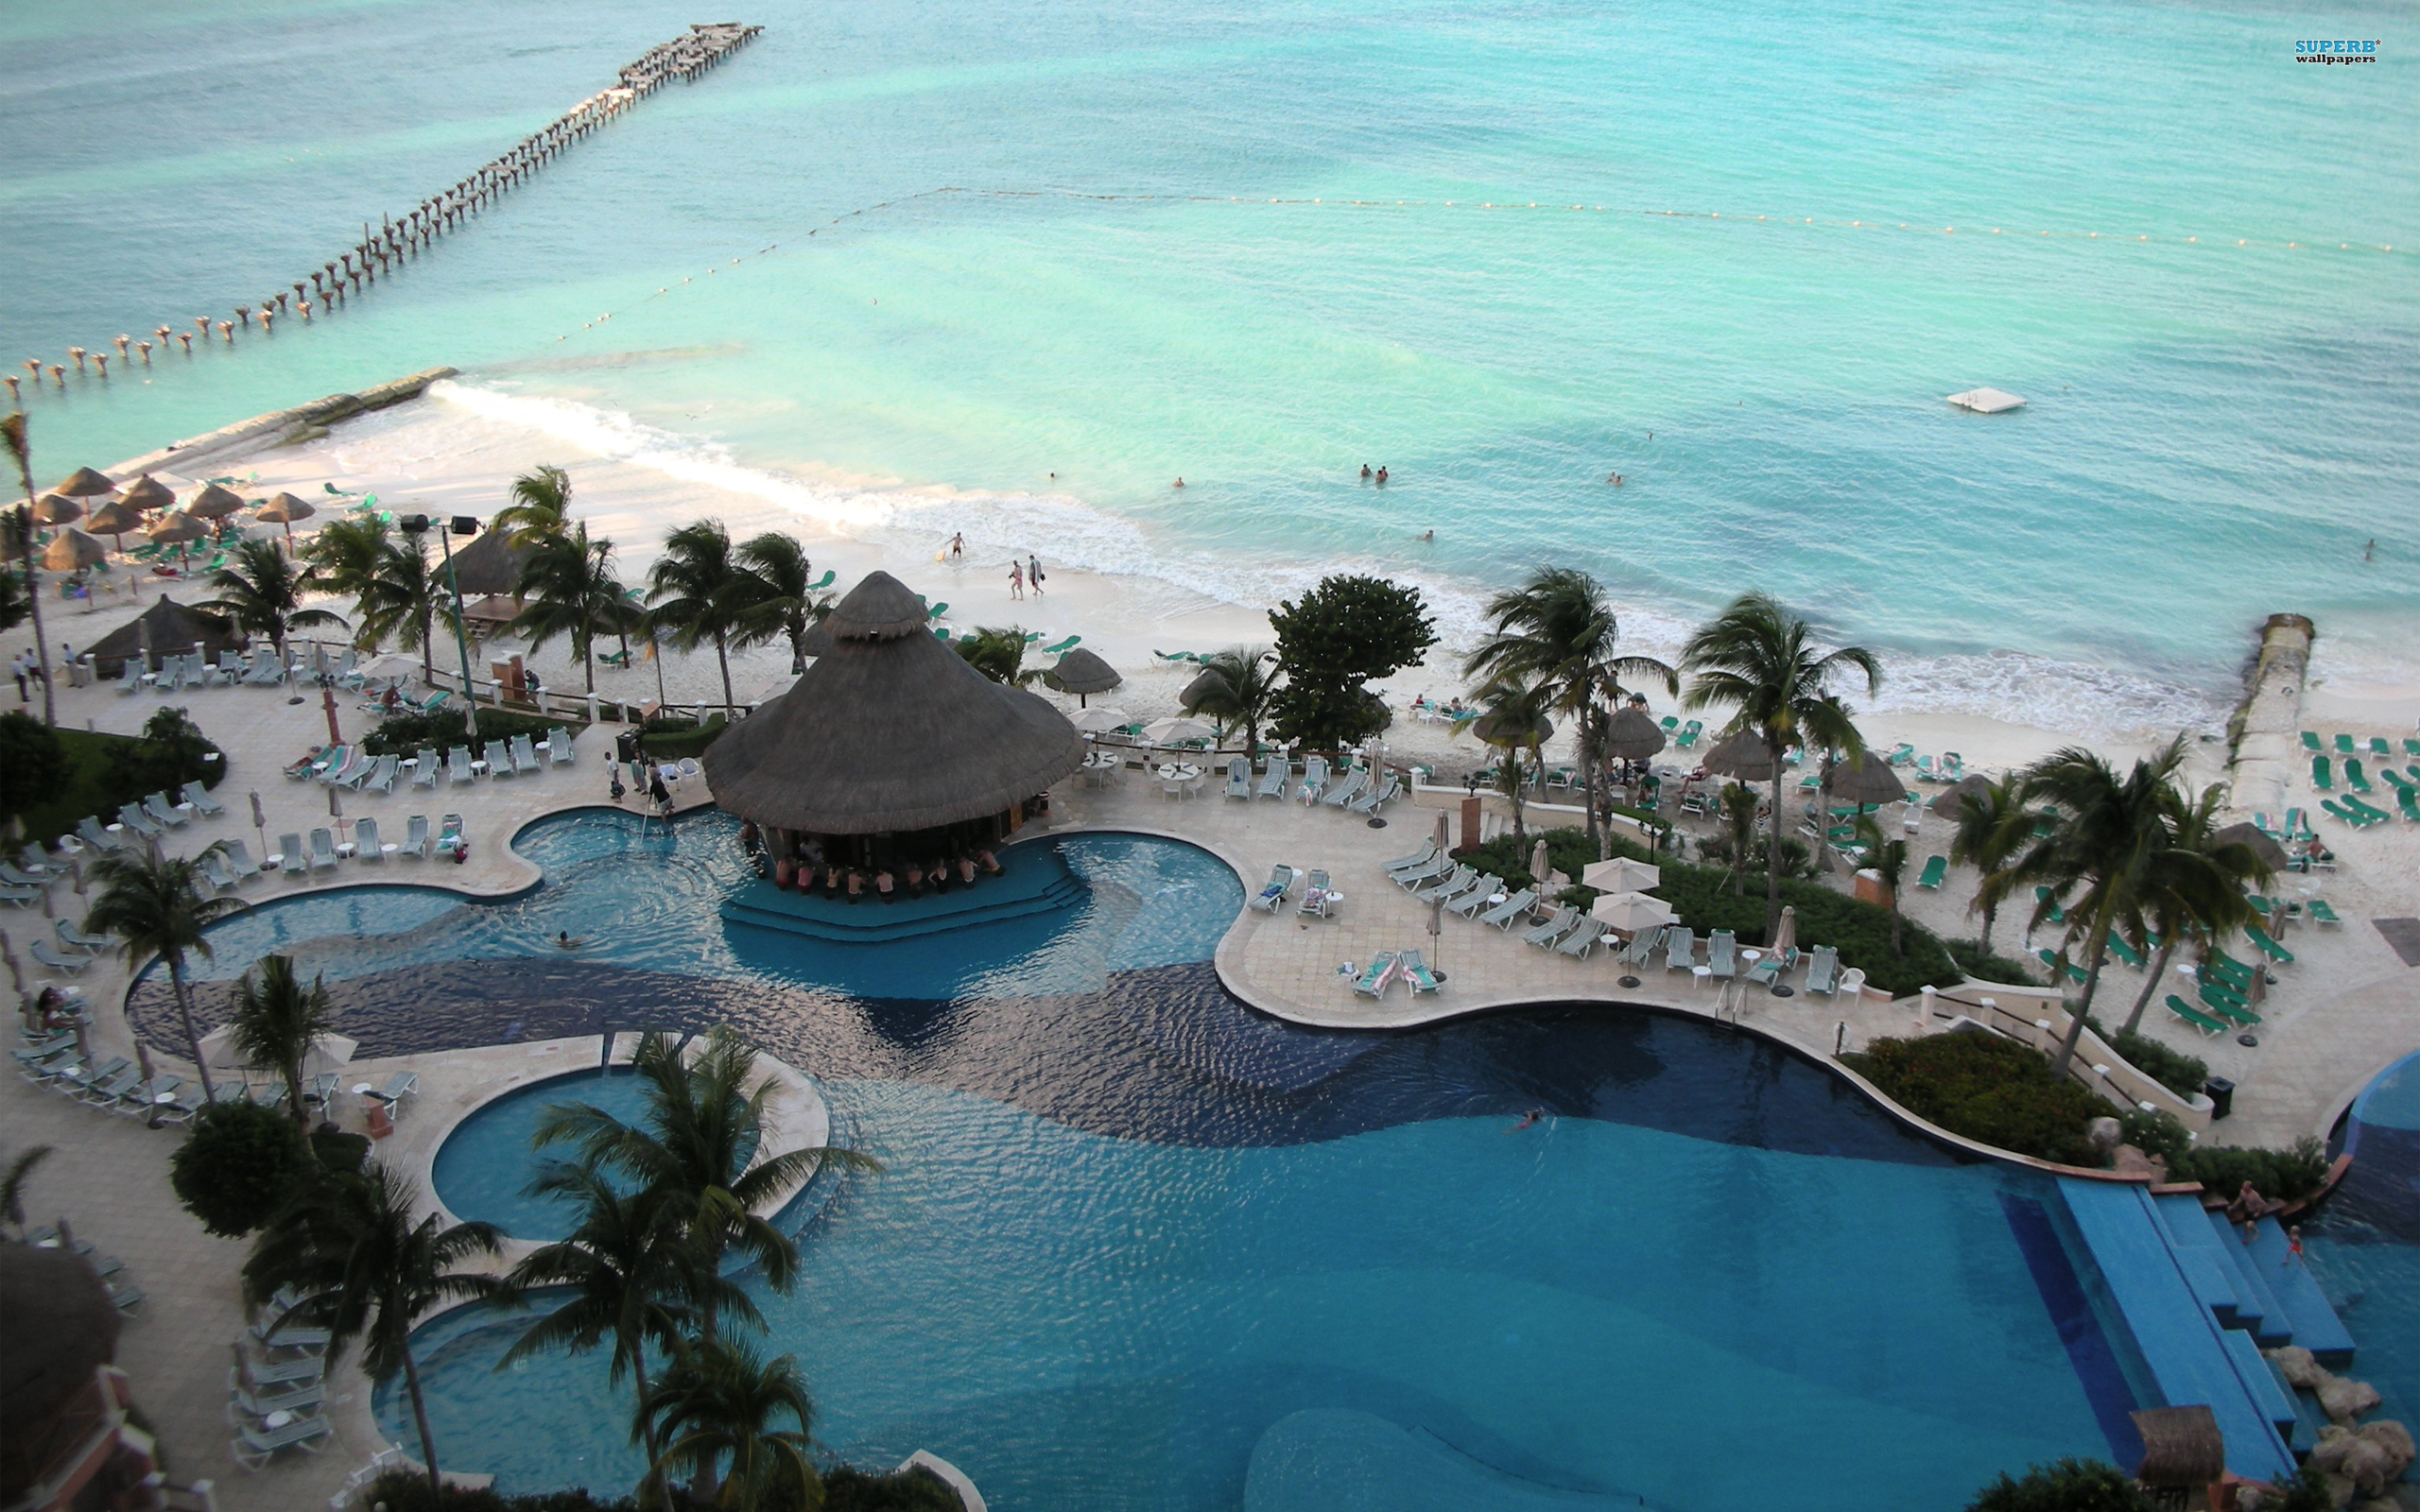 Cancun wallpaper 2560x1600